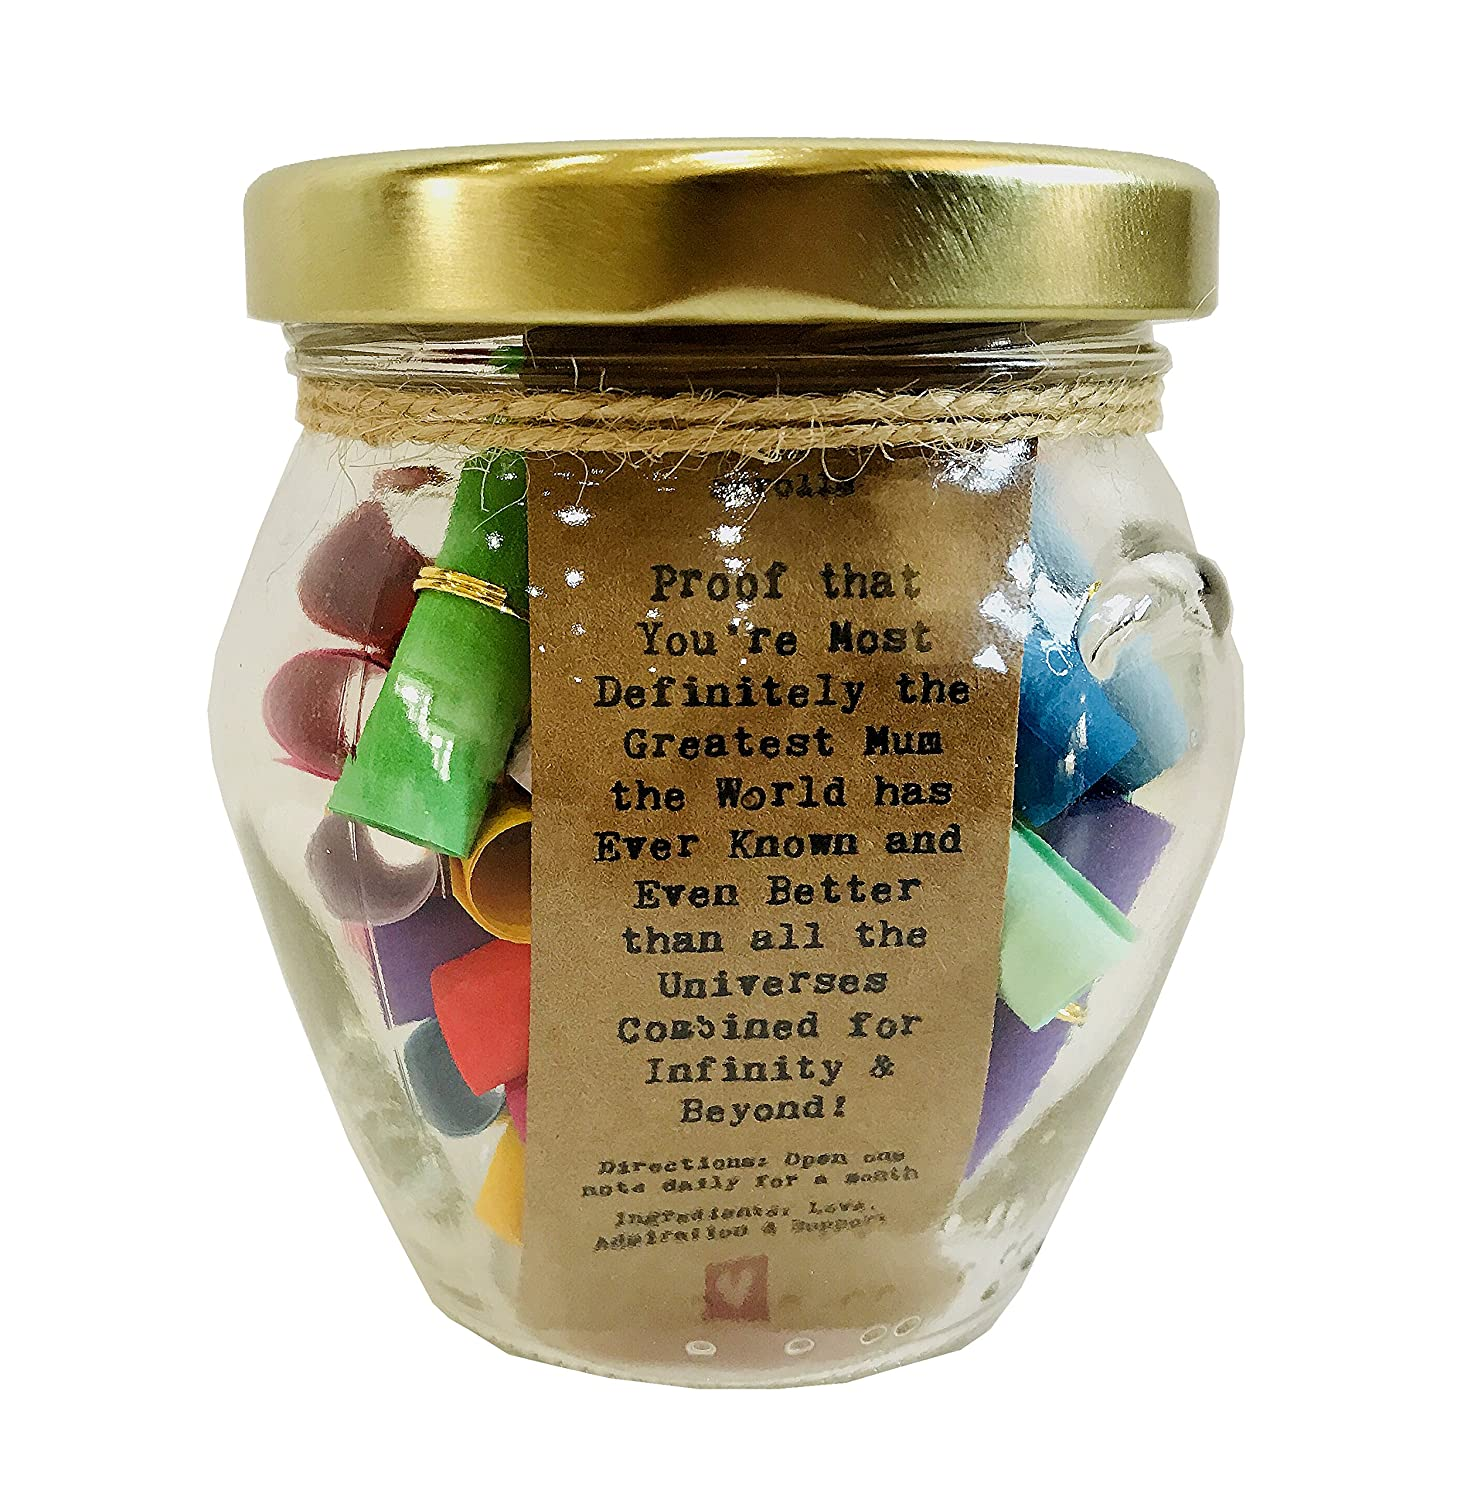 A Special Present for Mum - Proof that You're Most Definitely the Greatest Mum the World Has Ever Known and Even Better than all the Universes Combined for Infinity & Beyond – Little Jar of Big Ideas - Thoughtful Gift - Unique Present - Artisan Handcr